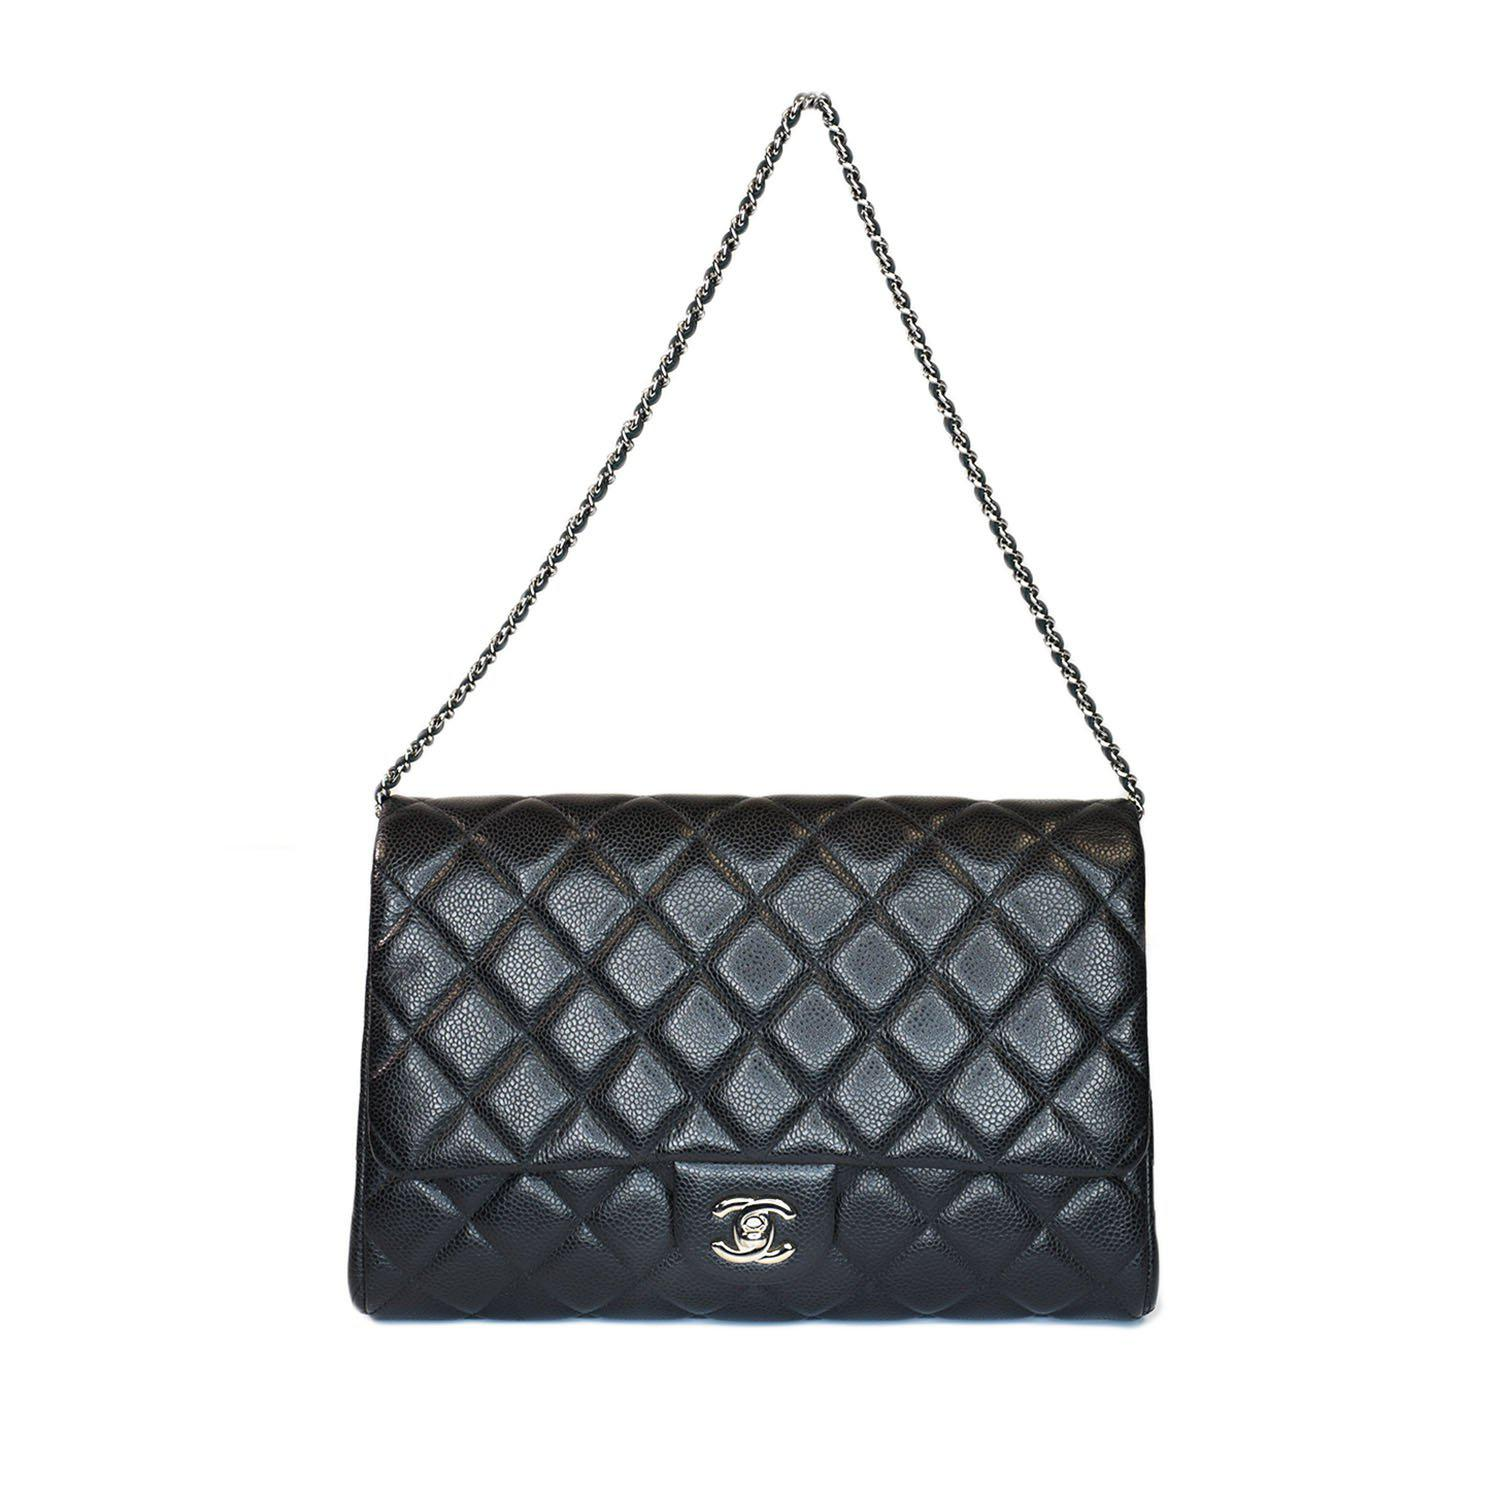 Chanel Classic Quilted Clutch Shoulder Bag  Lot 5   Auction King b6dff194bd